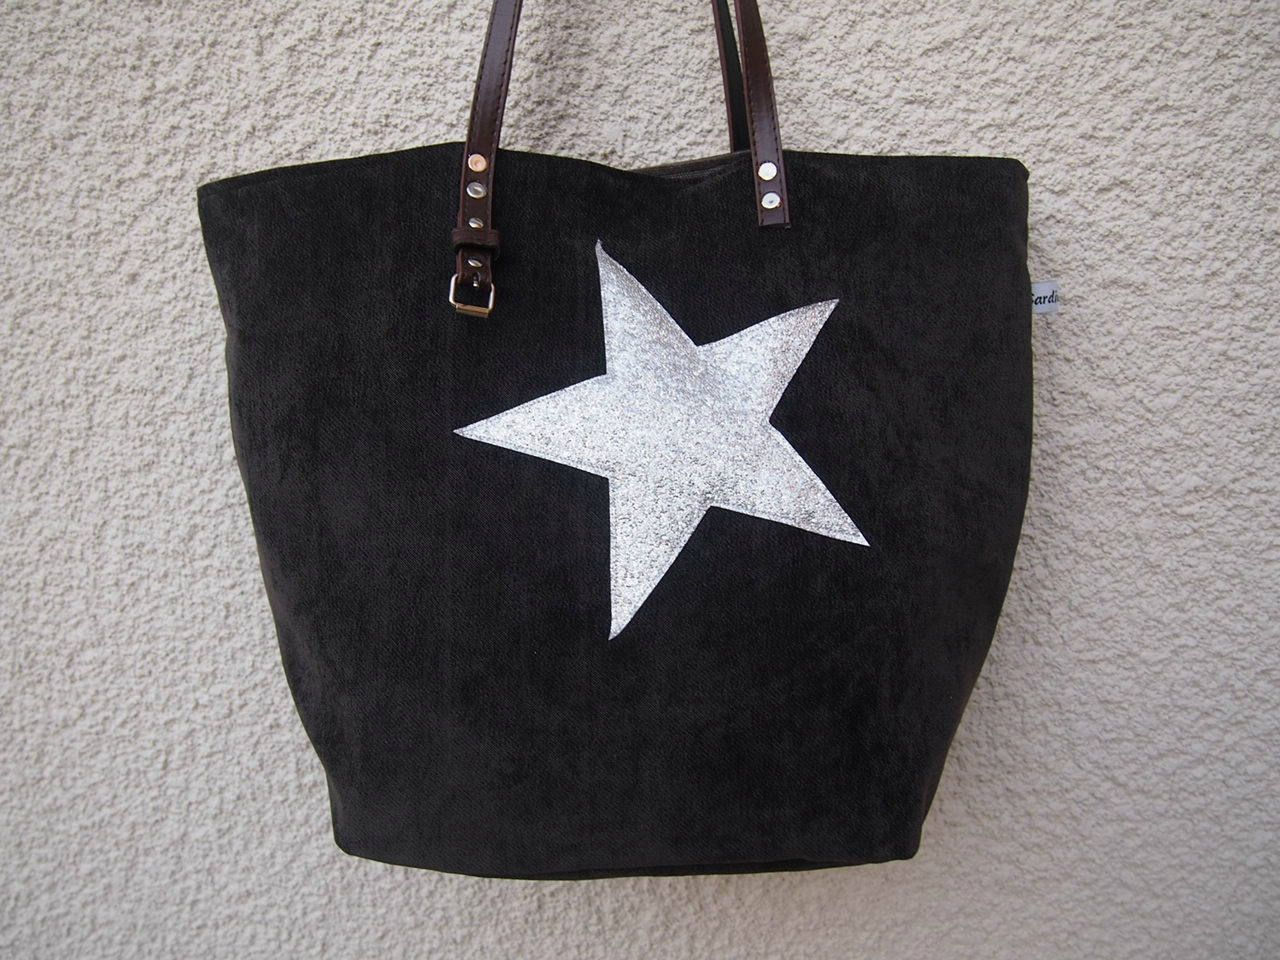 Black designer tote bag and handles silver glitter star